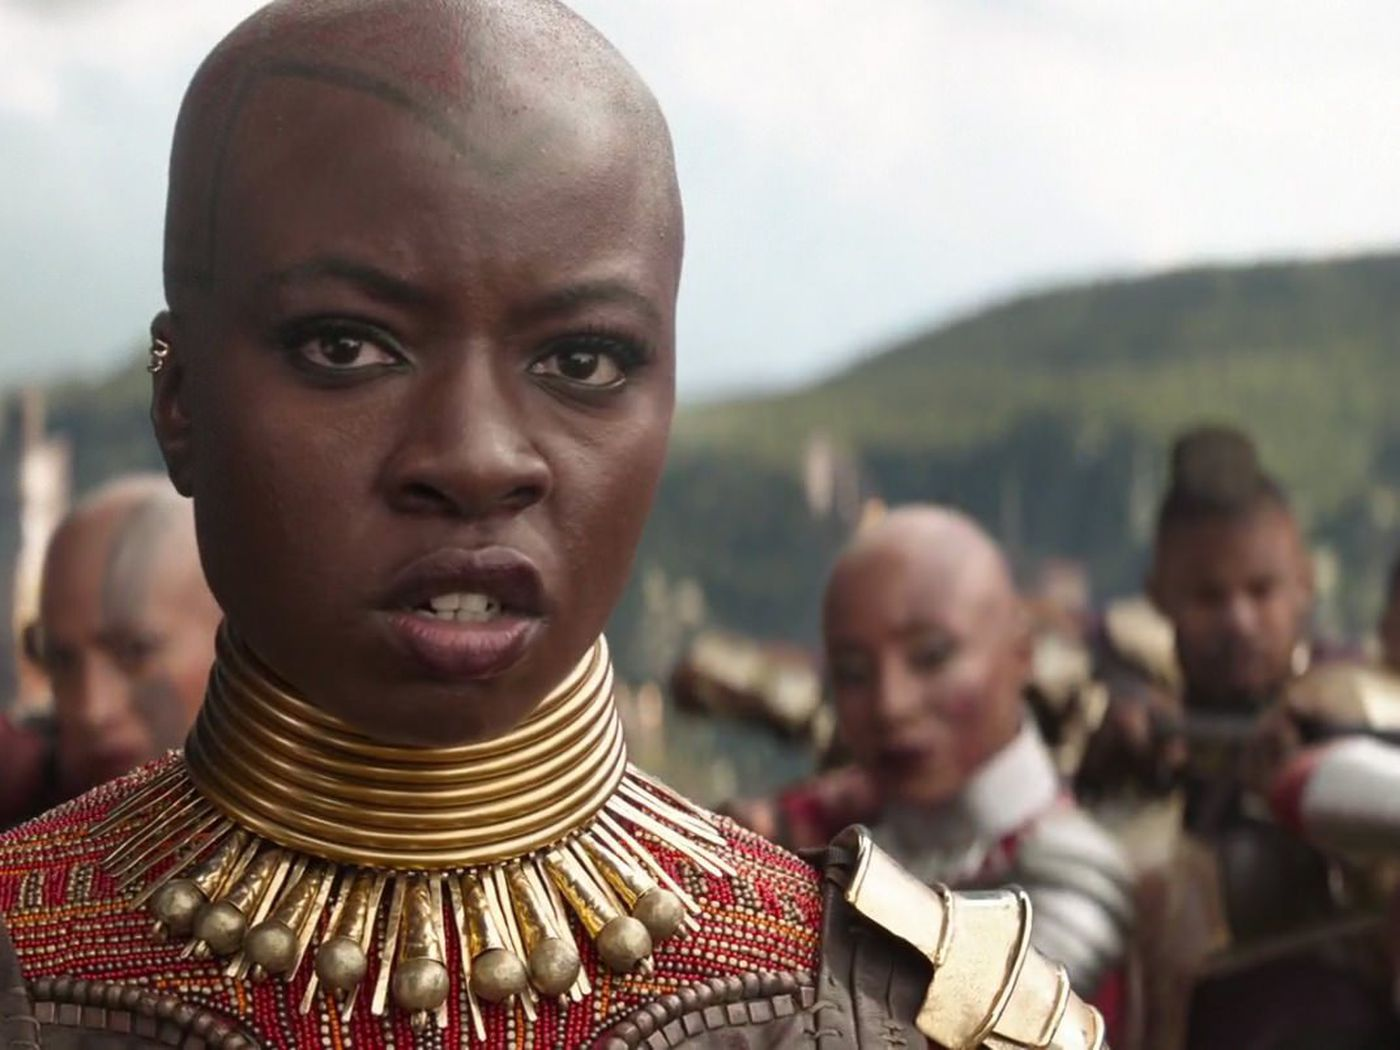 Avengers: Infinity War producer on how women shaped the